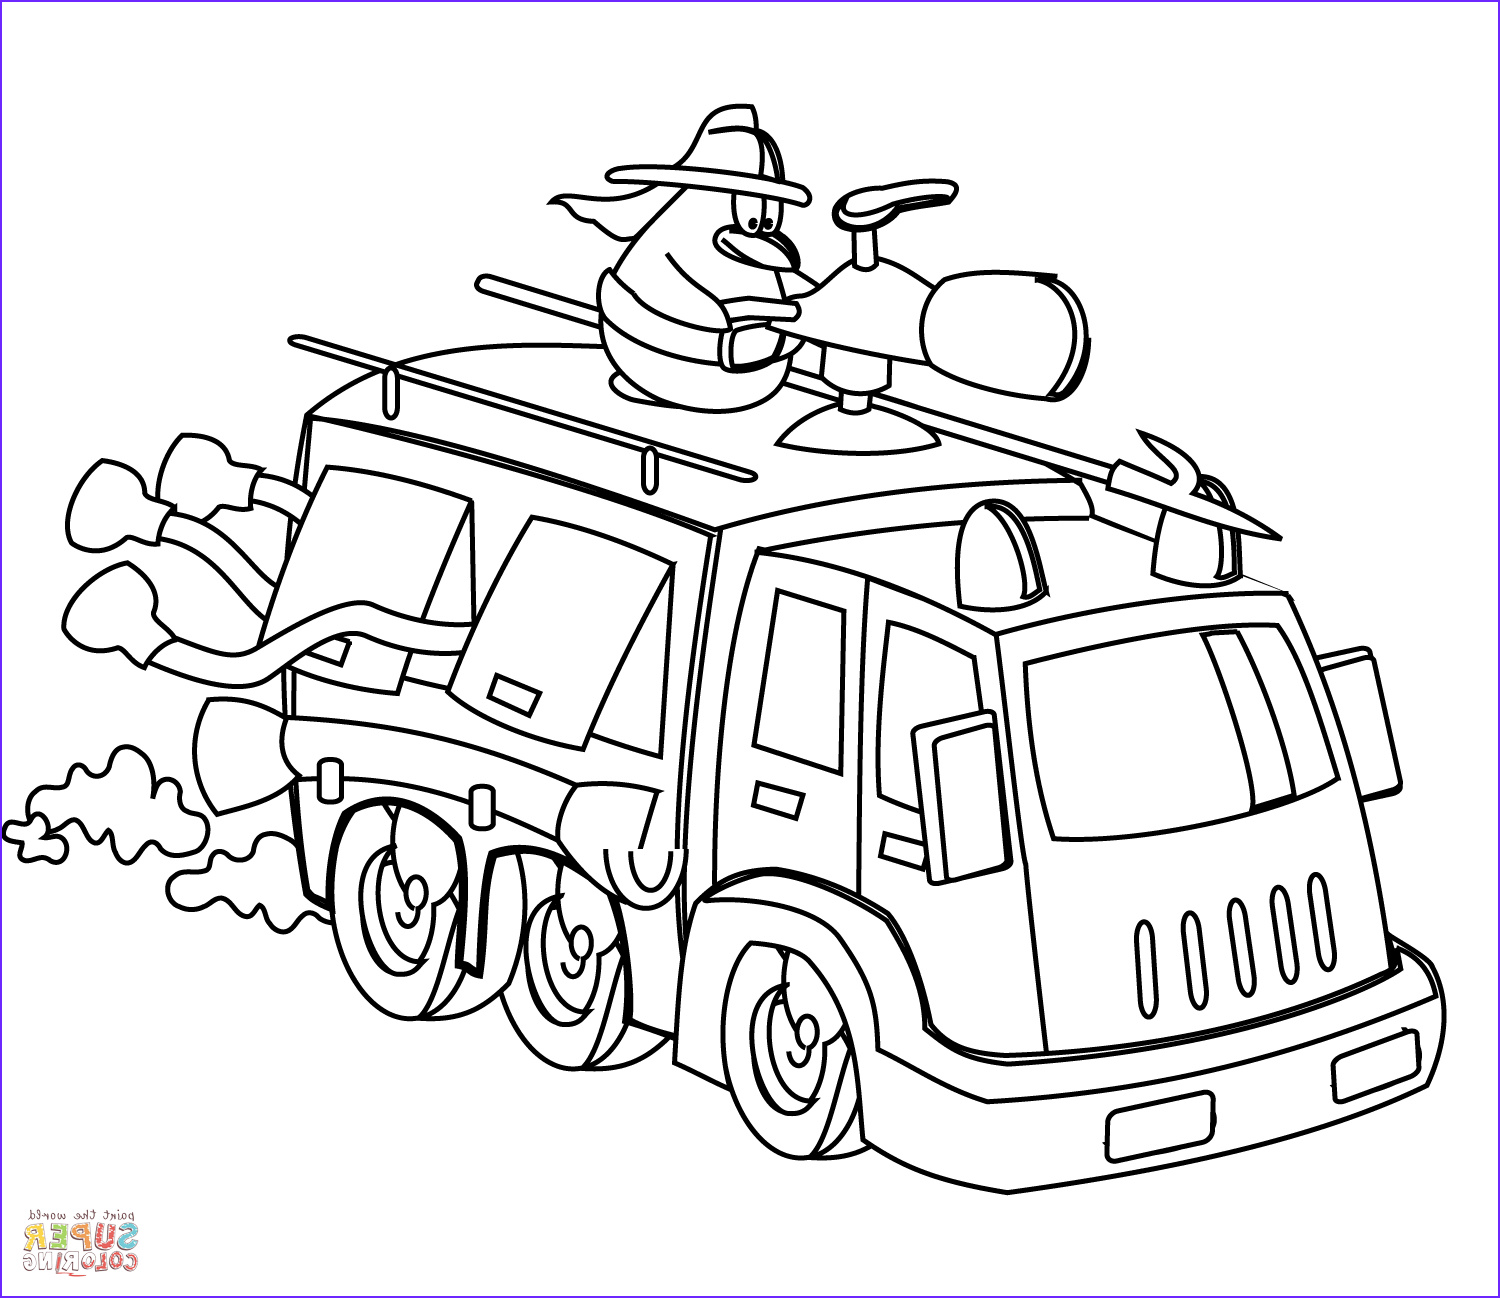 Fire Truck Coloring Pages Inspirational Stock Cartoon Fire Truck Coloring Page